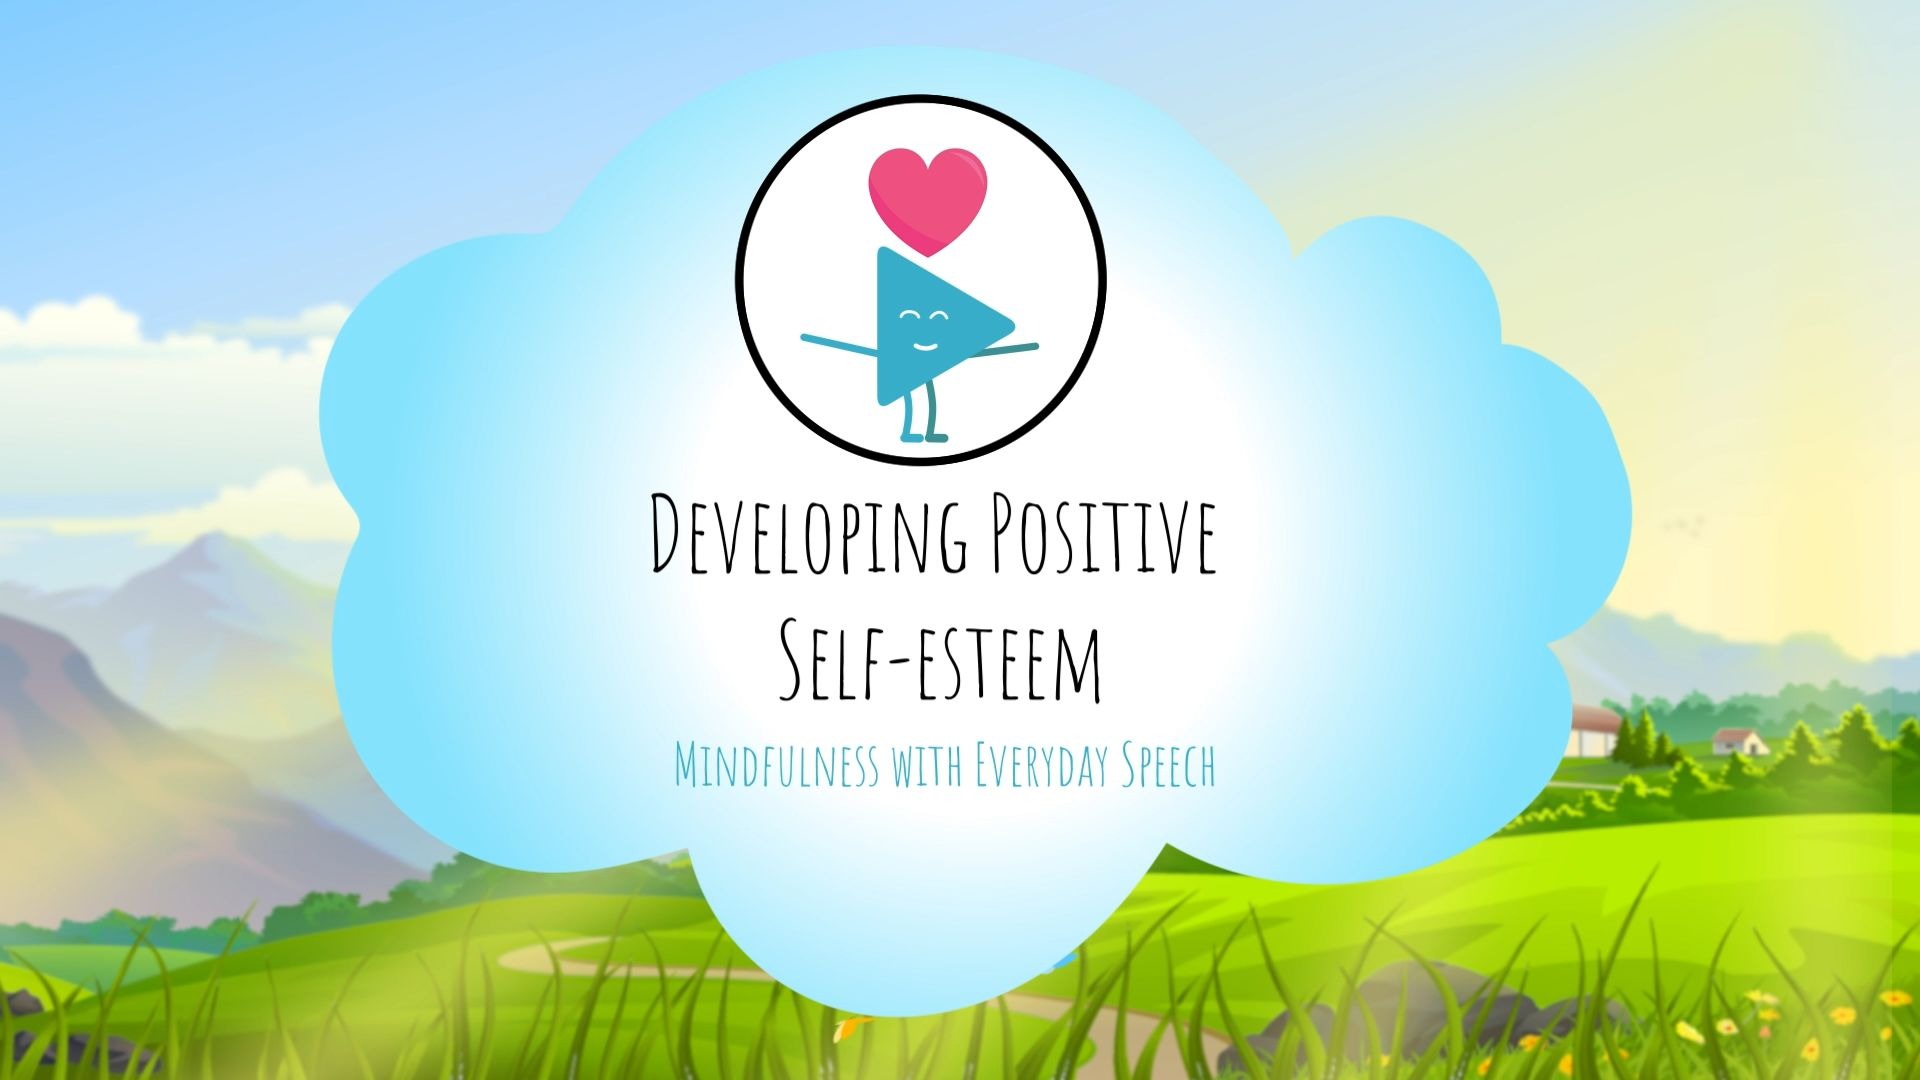 Developing Positive Self-Esteem